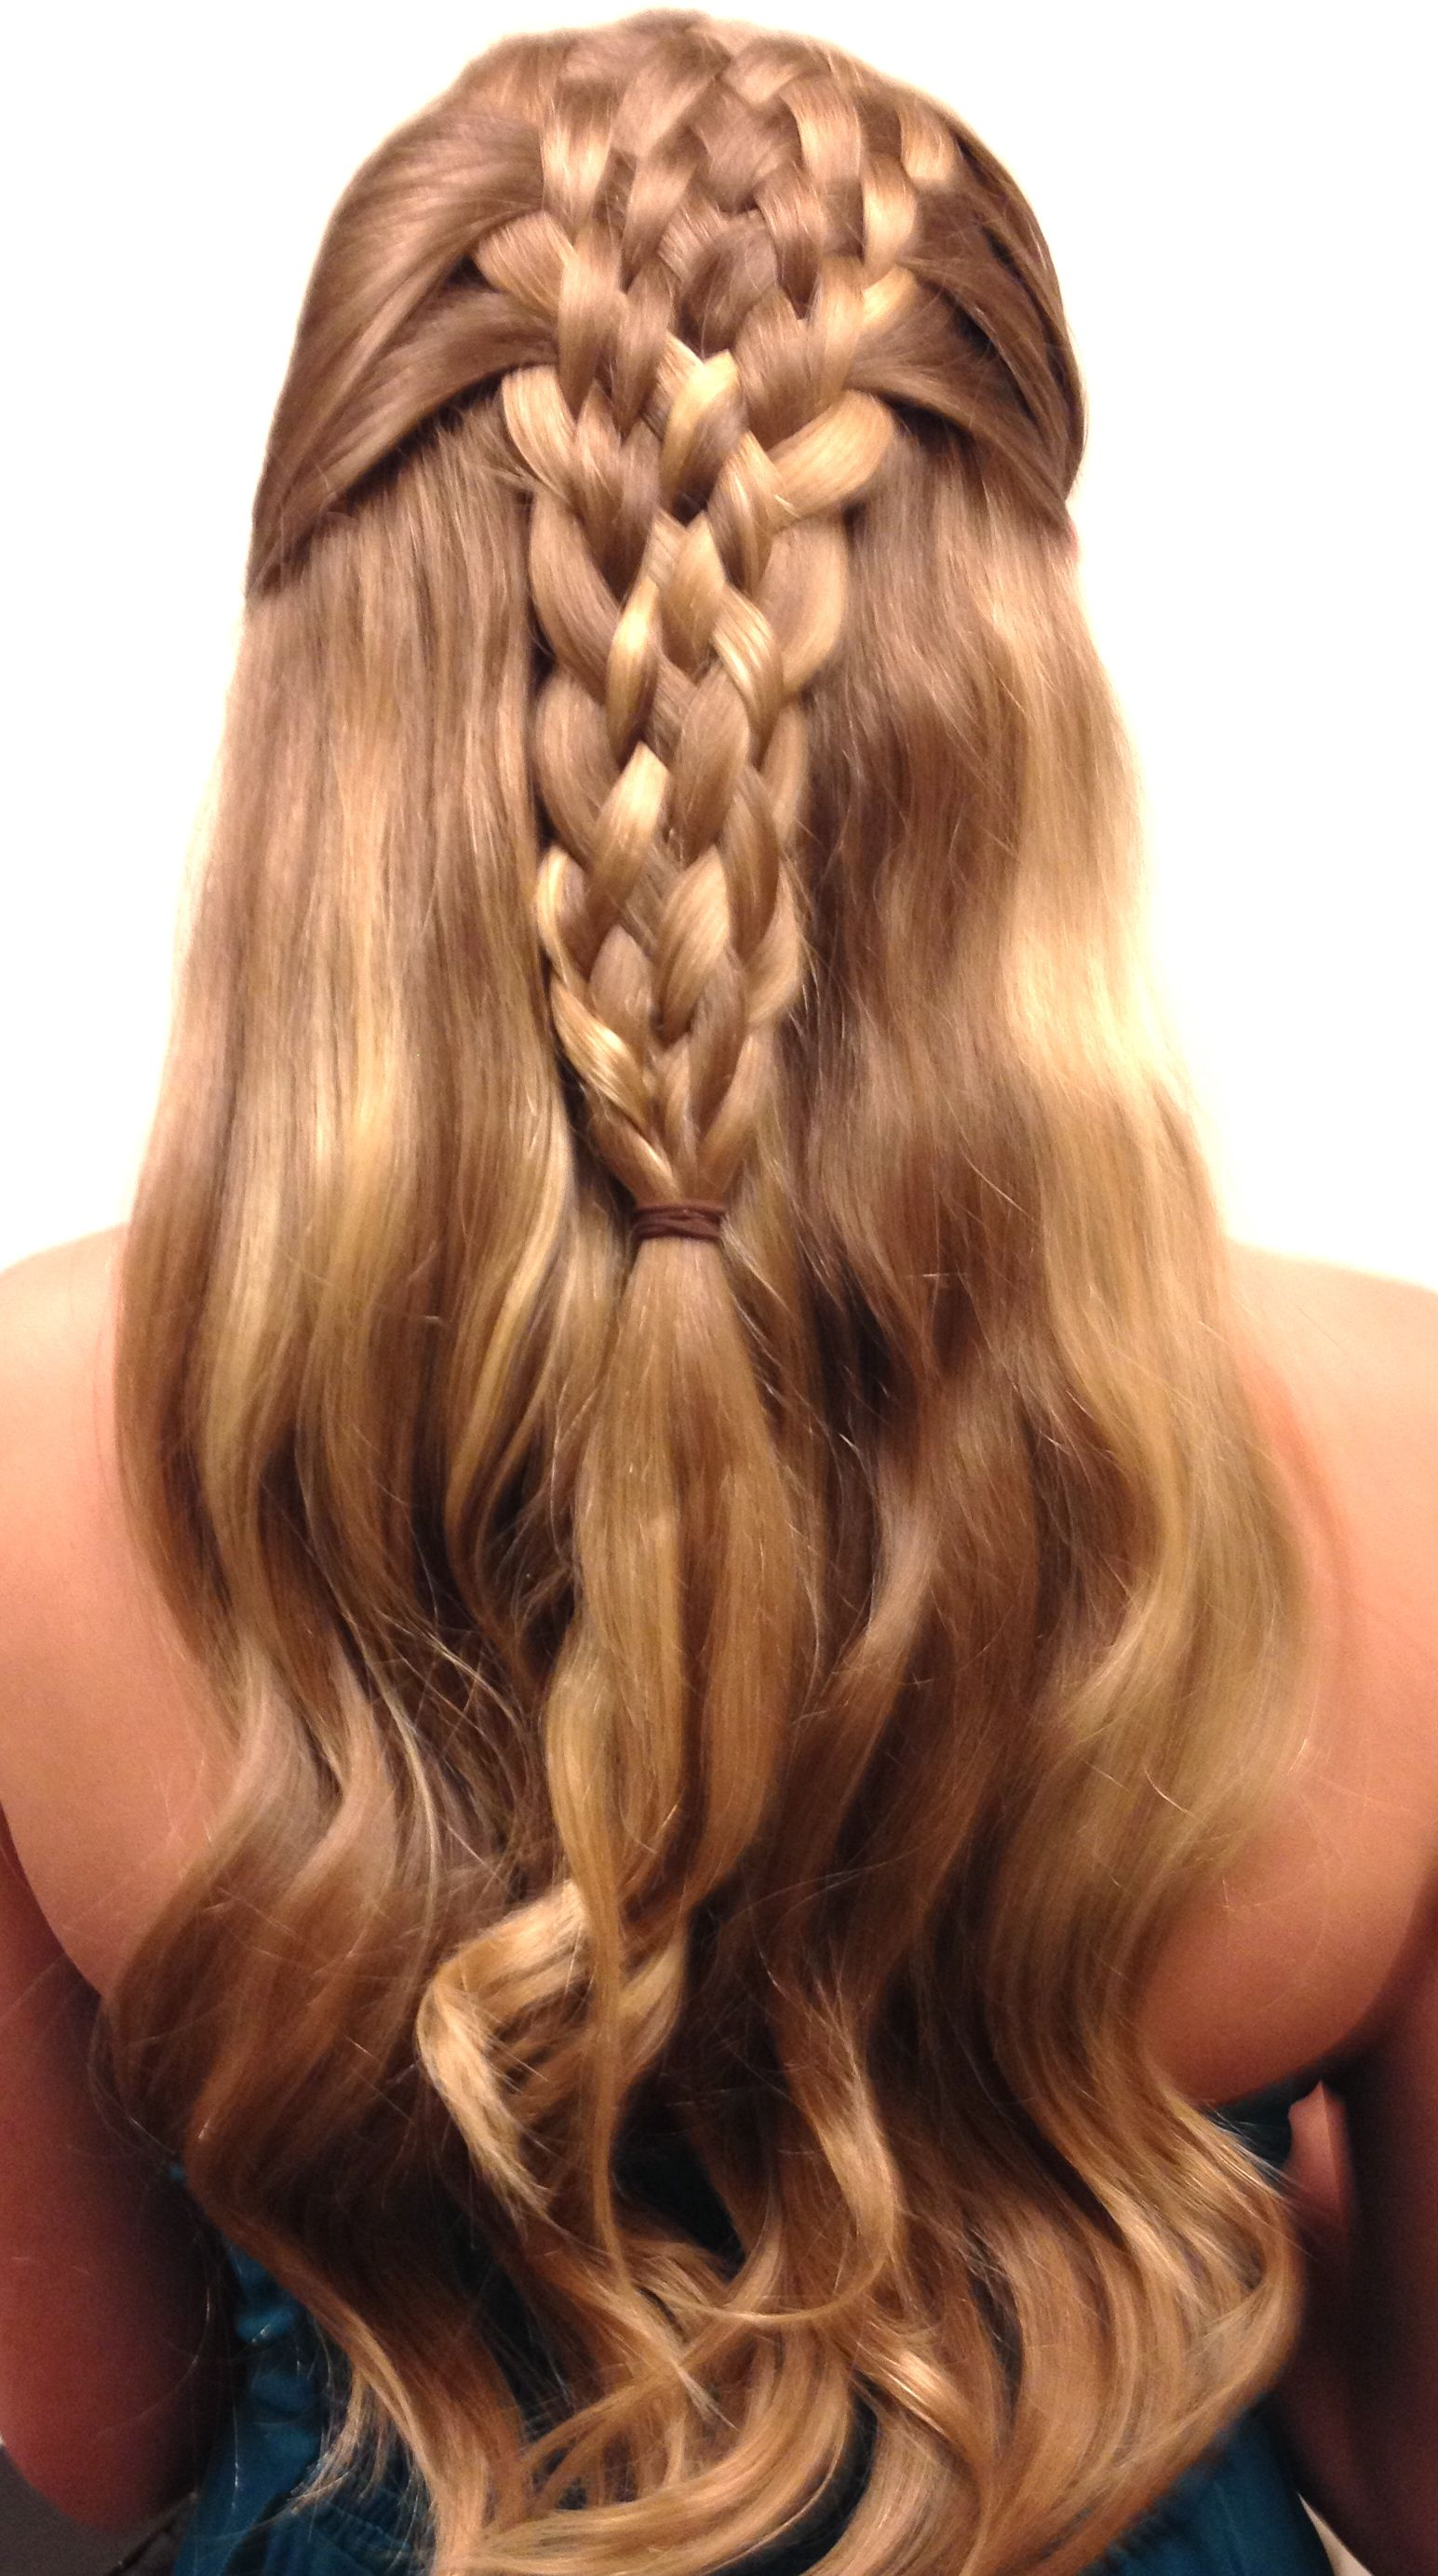 Basket Braid Over Loose Waves The Fine Art Of Beautiful Hair In